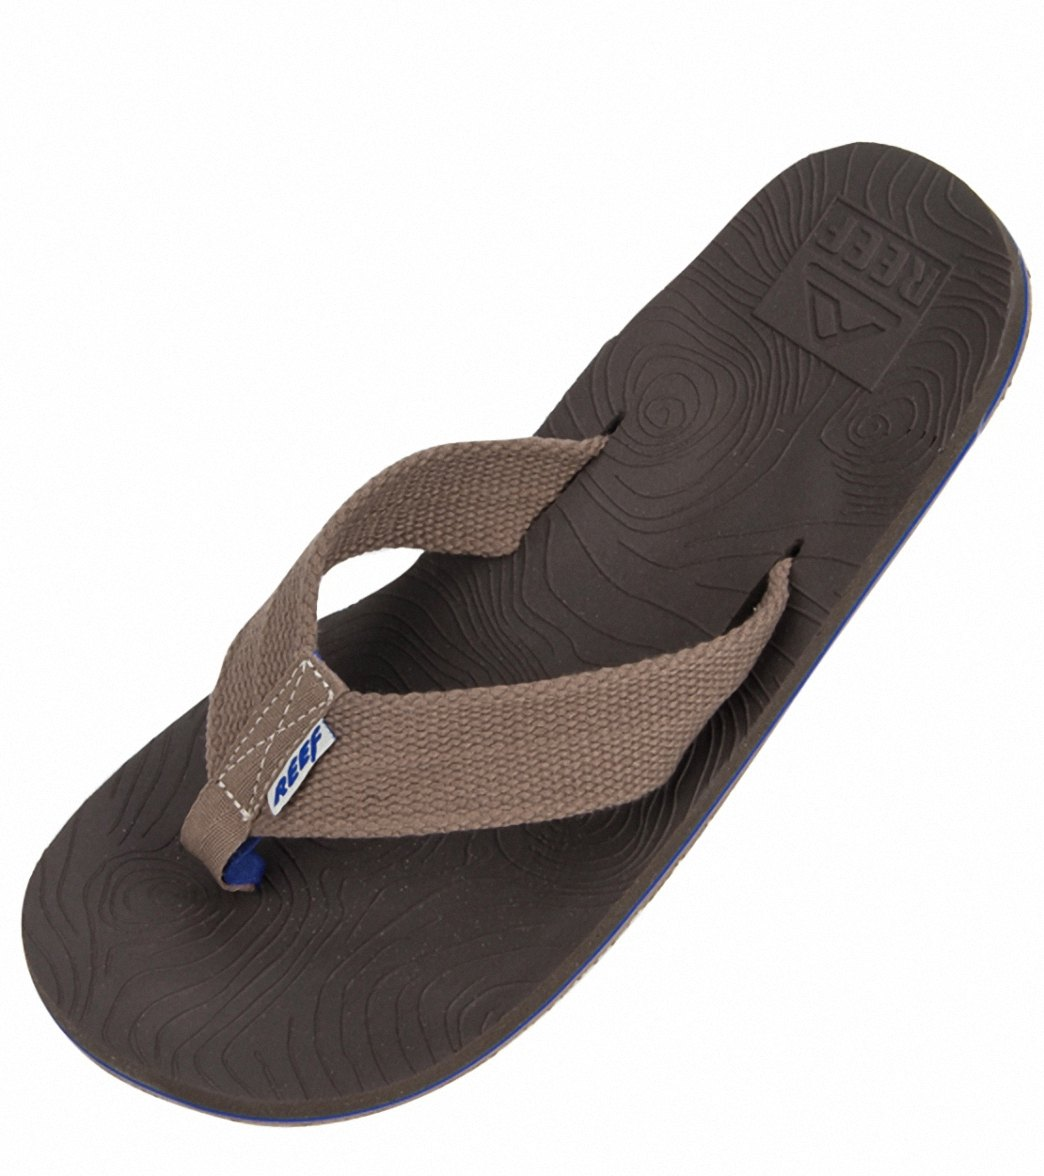 84d858594767eb Reef Men s Zen Flip Flop at SwimOutlet.com